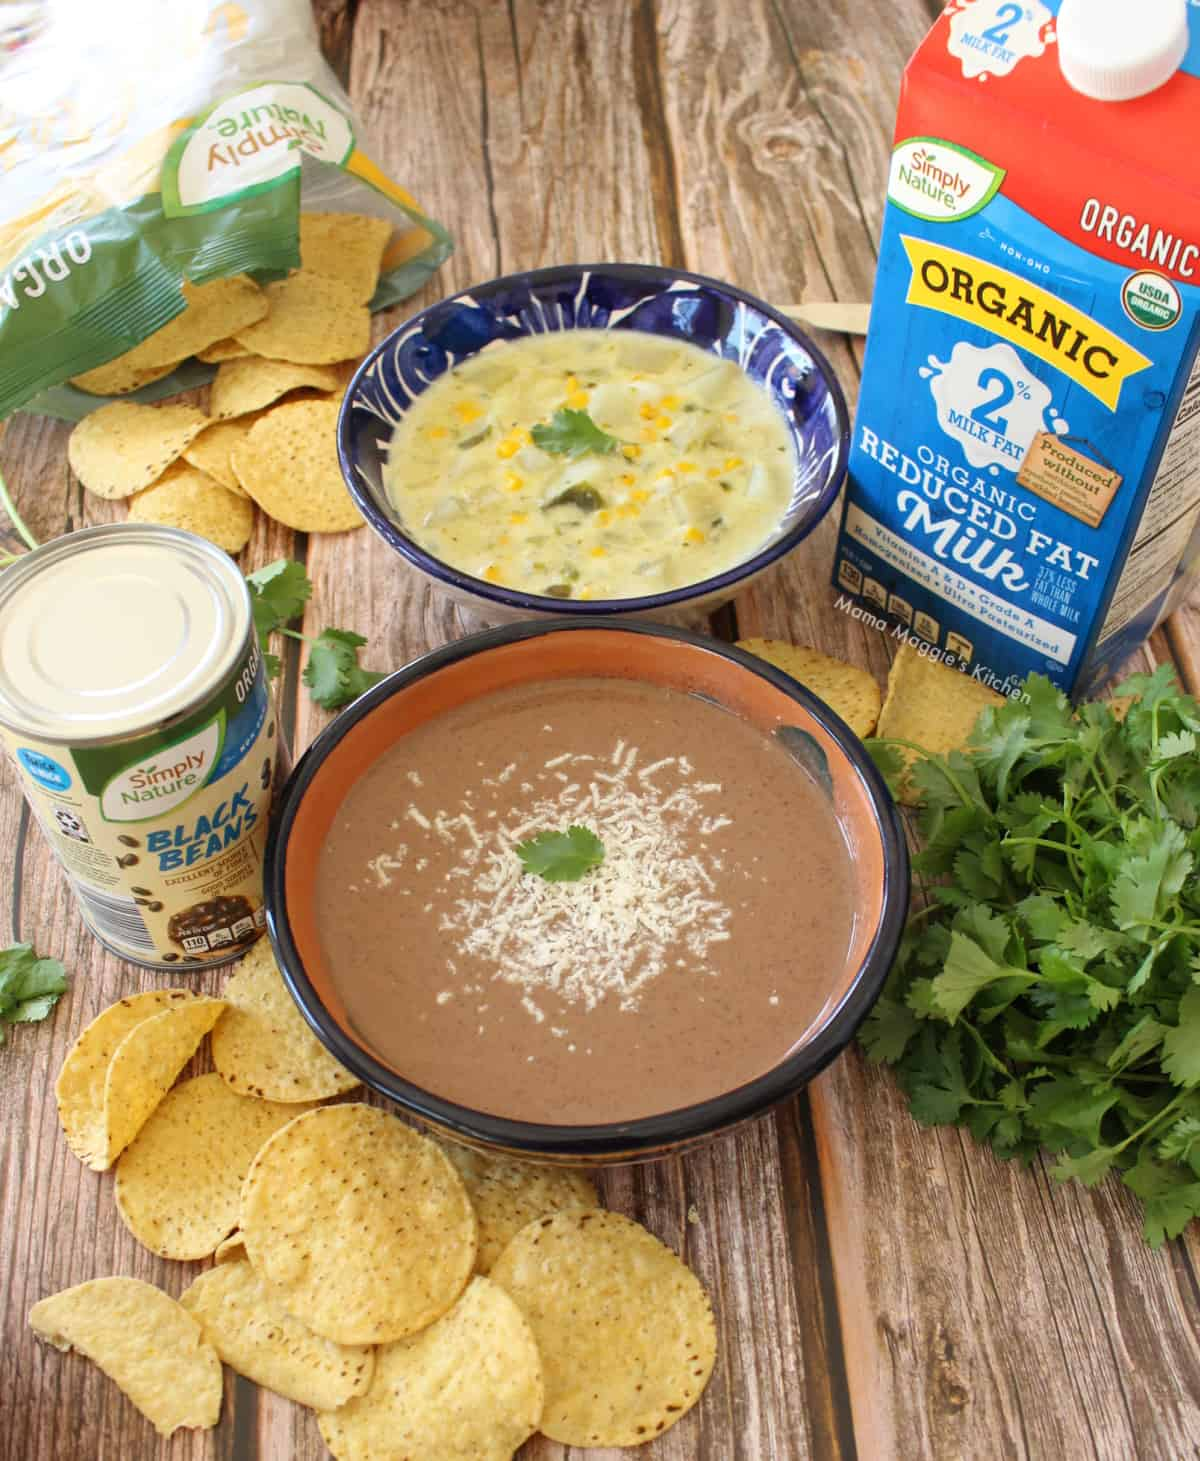 Crema de Frijol Negro and Caldo de Queso served in bowls and surrounded by chips and other ingredients.